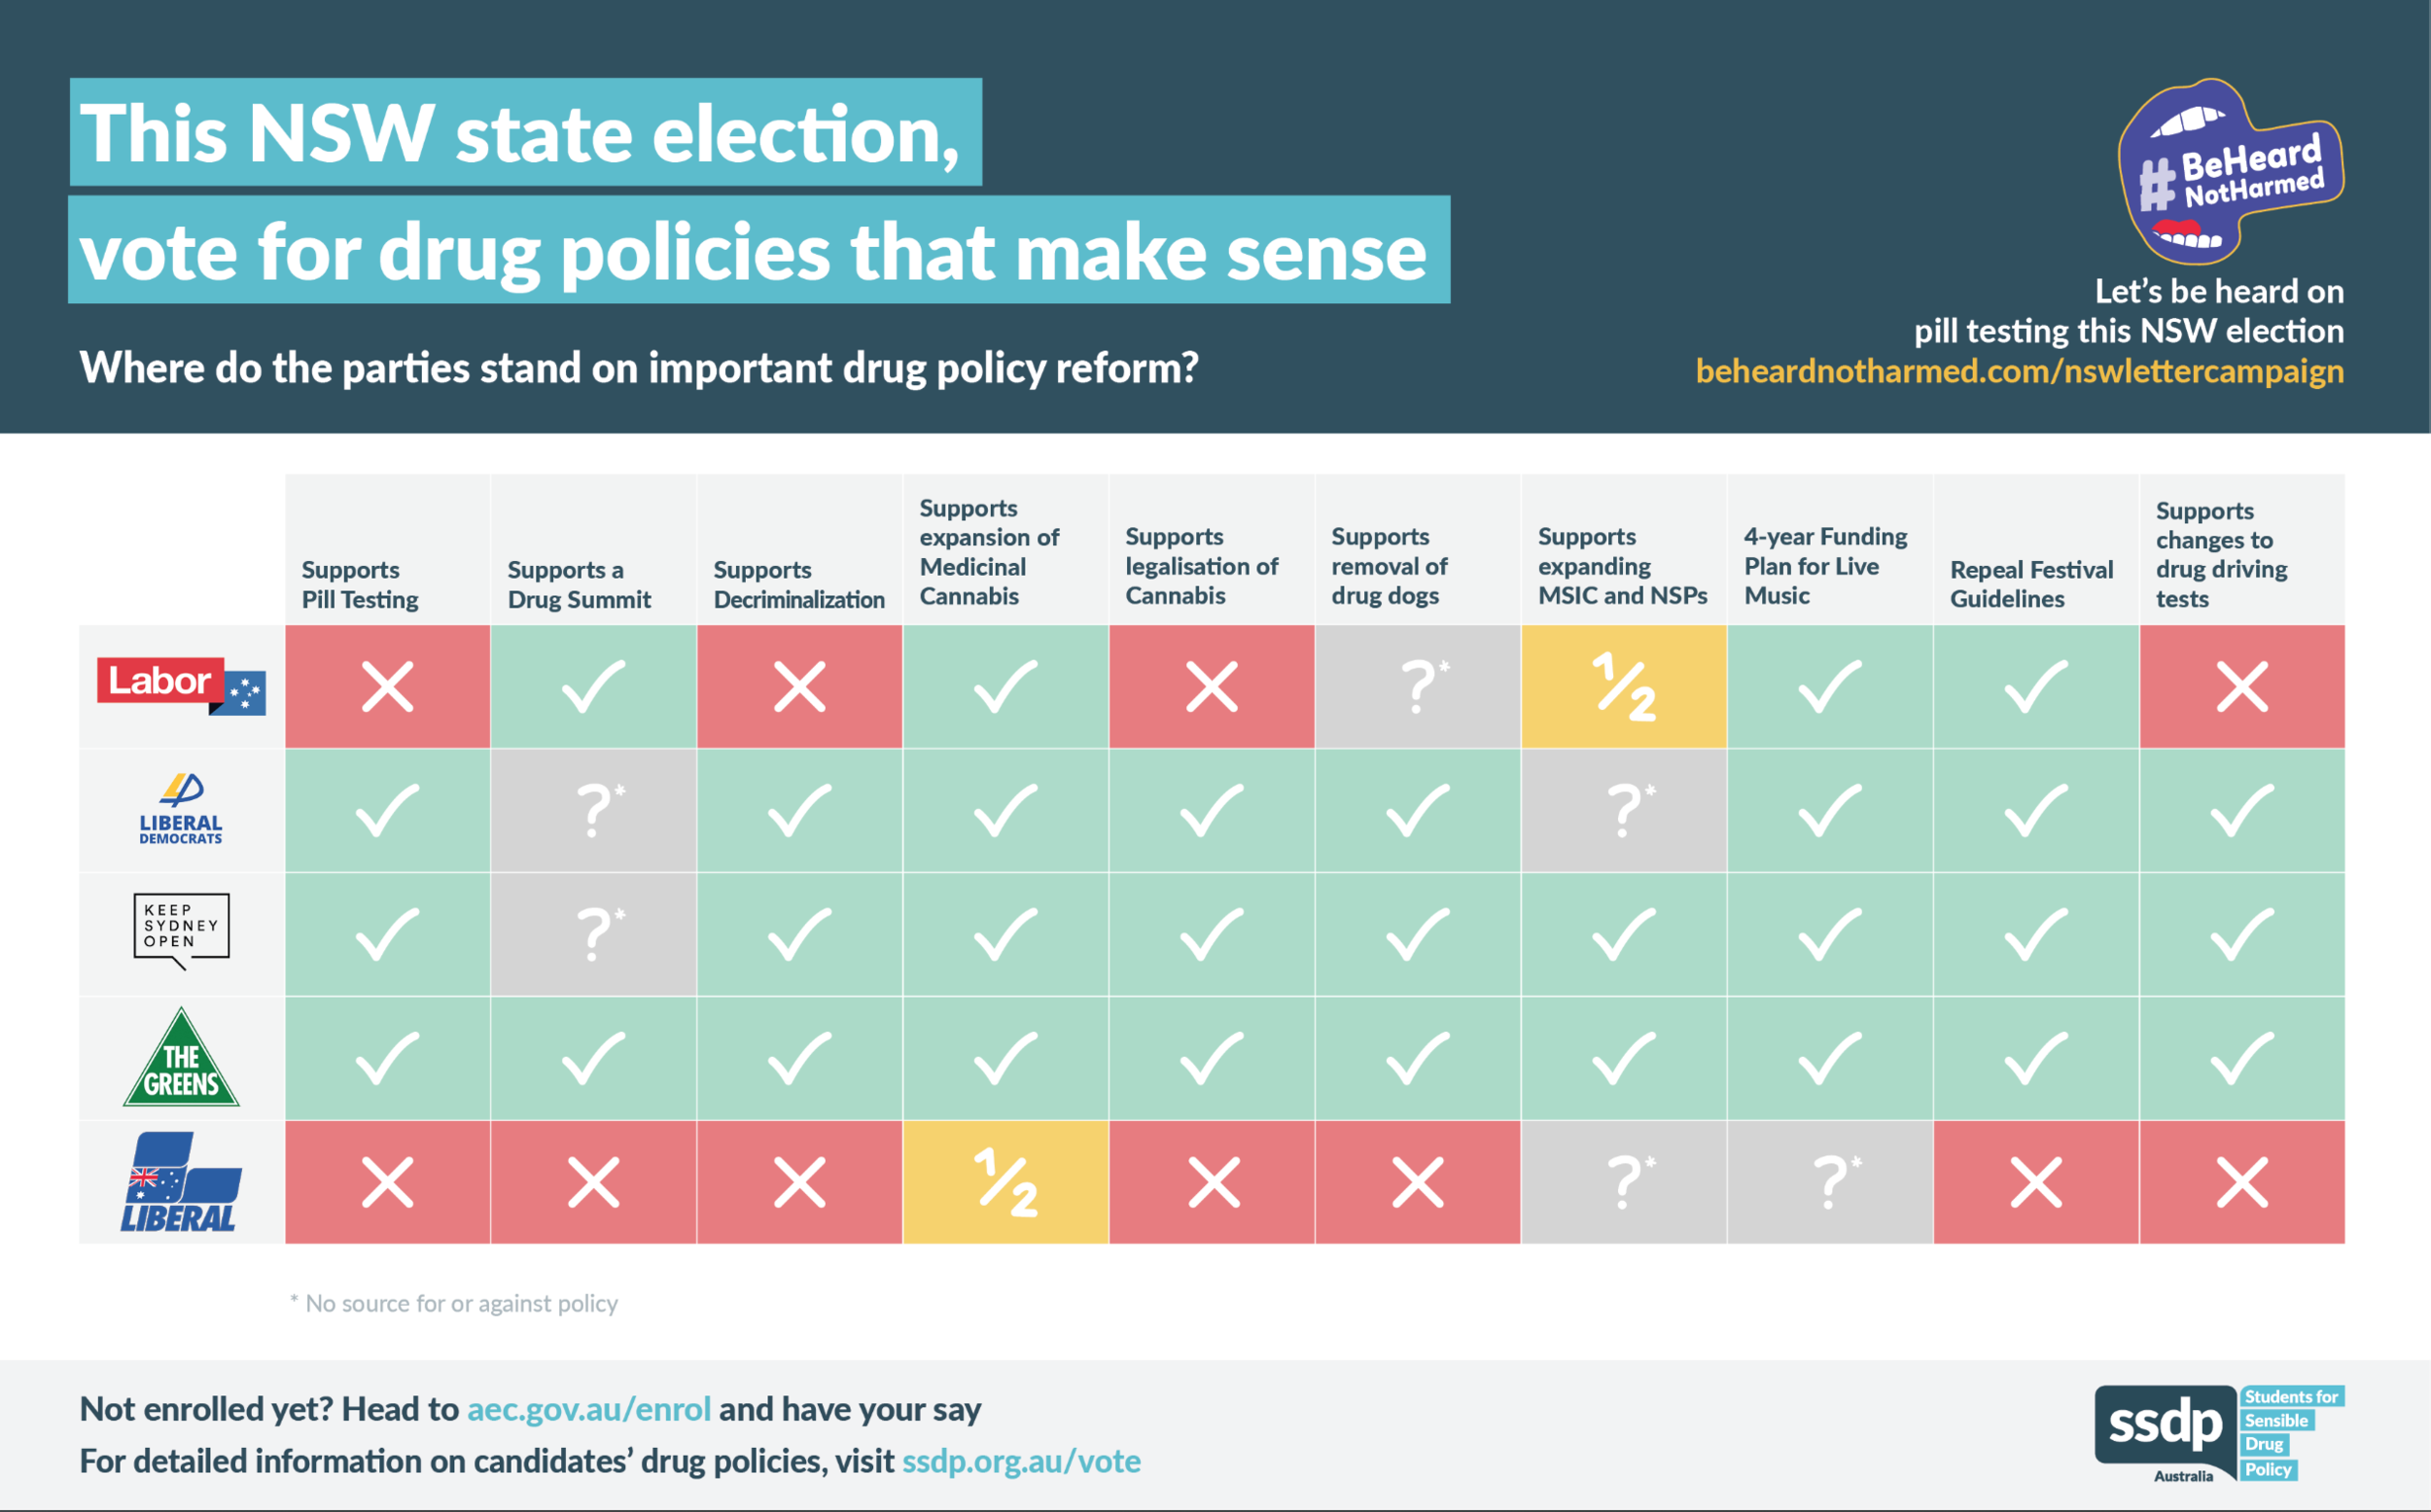 Our scorecard for the 2019 NSW State Election. Correct (to the best of our knowledge) as of 13/3/2019. Policy positions may change in the lead-up to the election, and we endeavour to keep this webpage up-to-date. Please contact timp@ssdp.org.au for corrections.